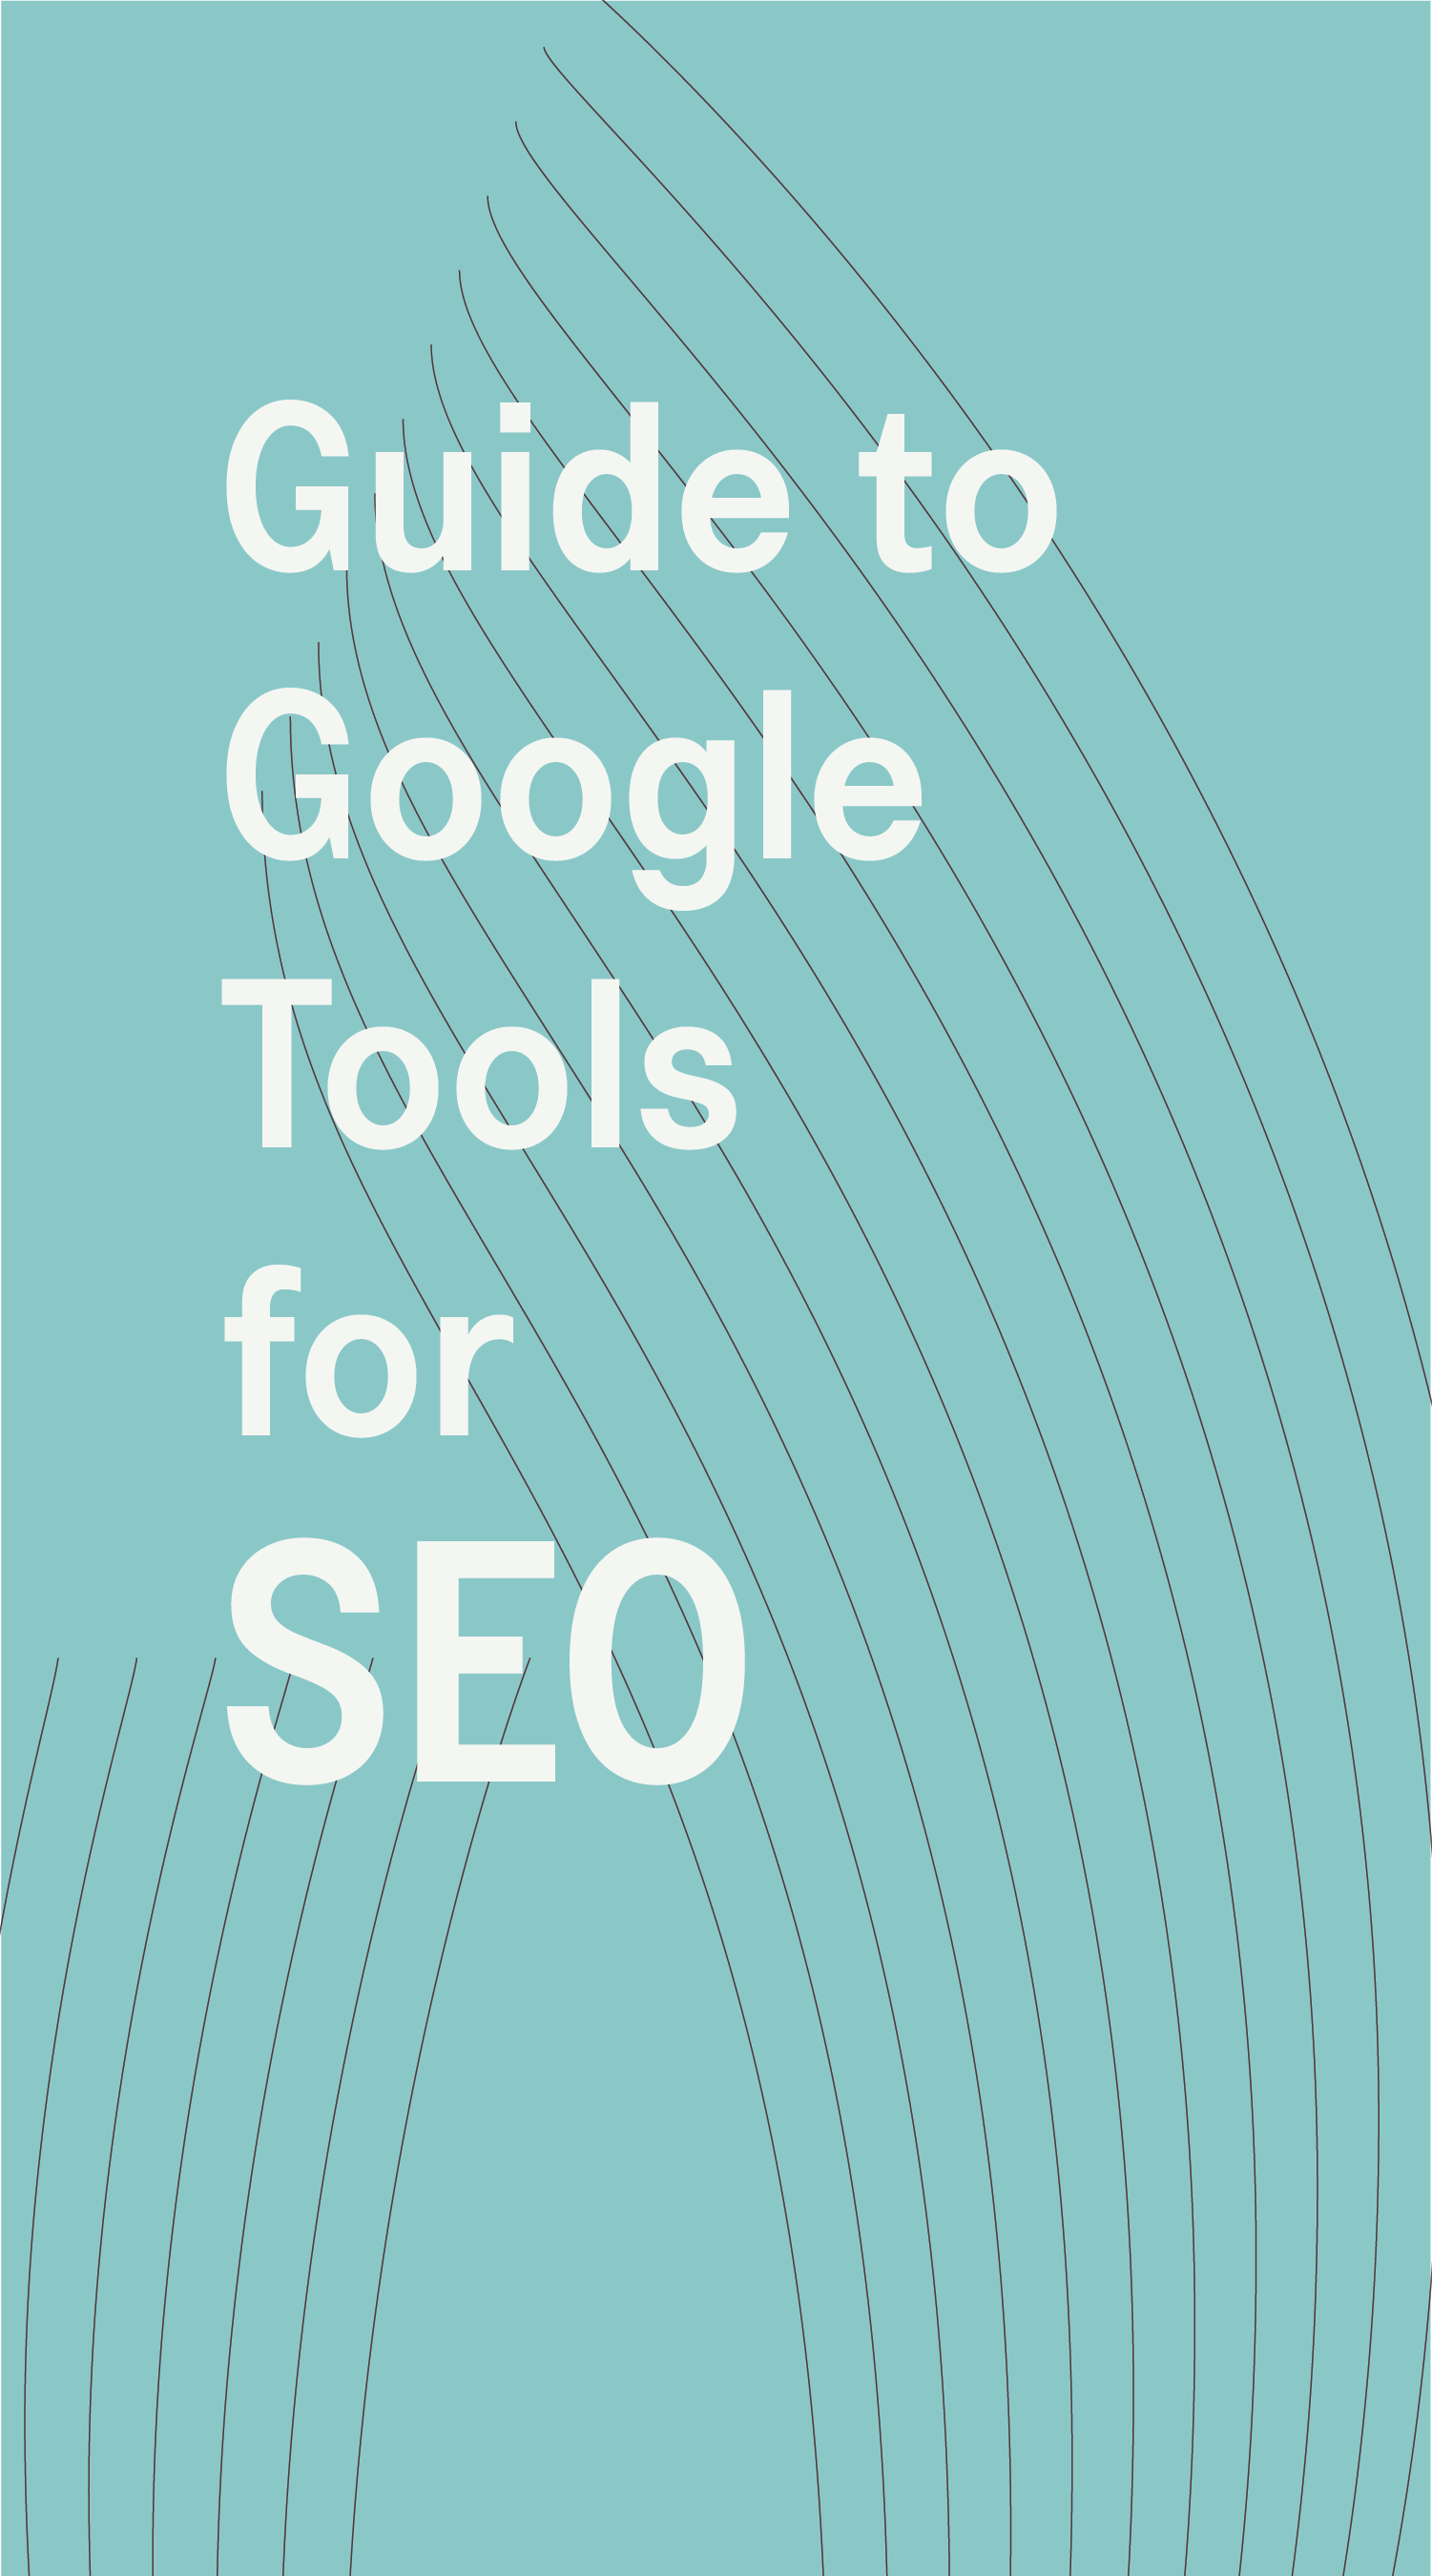 Download a guide to google tools for SEO